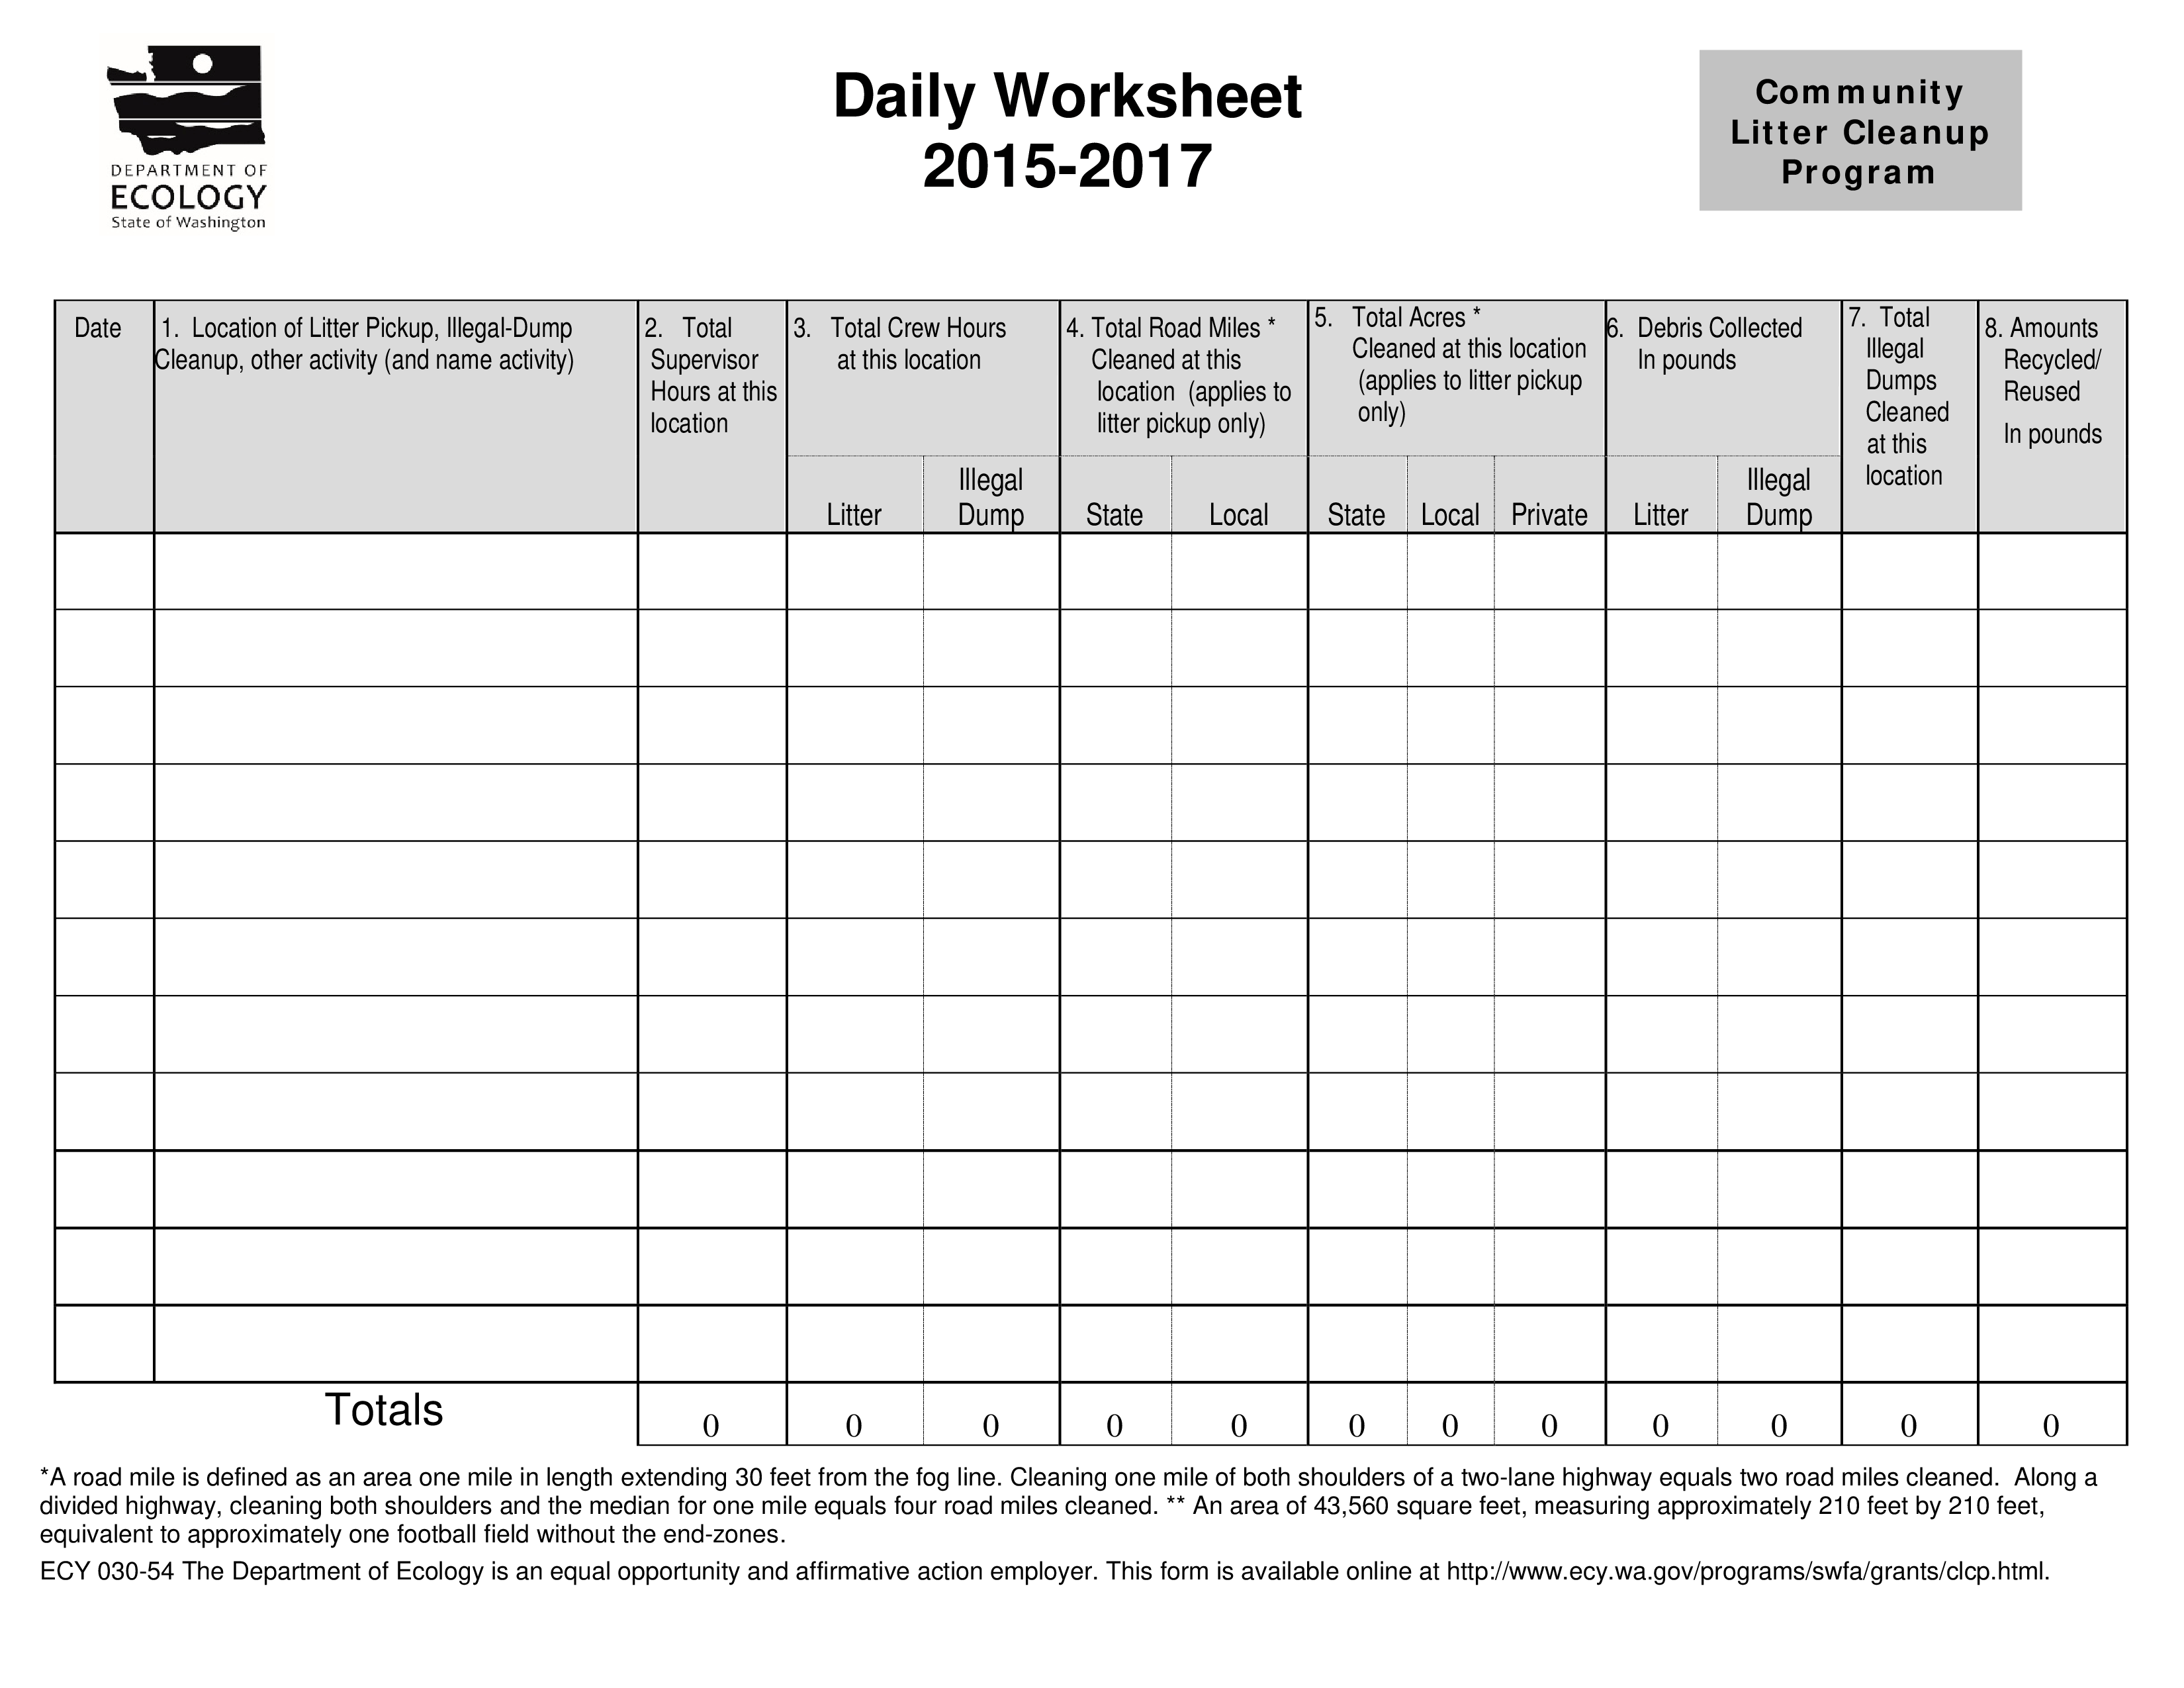 Daily Worksheet